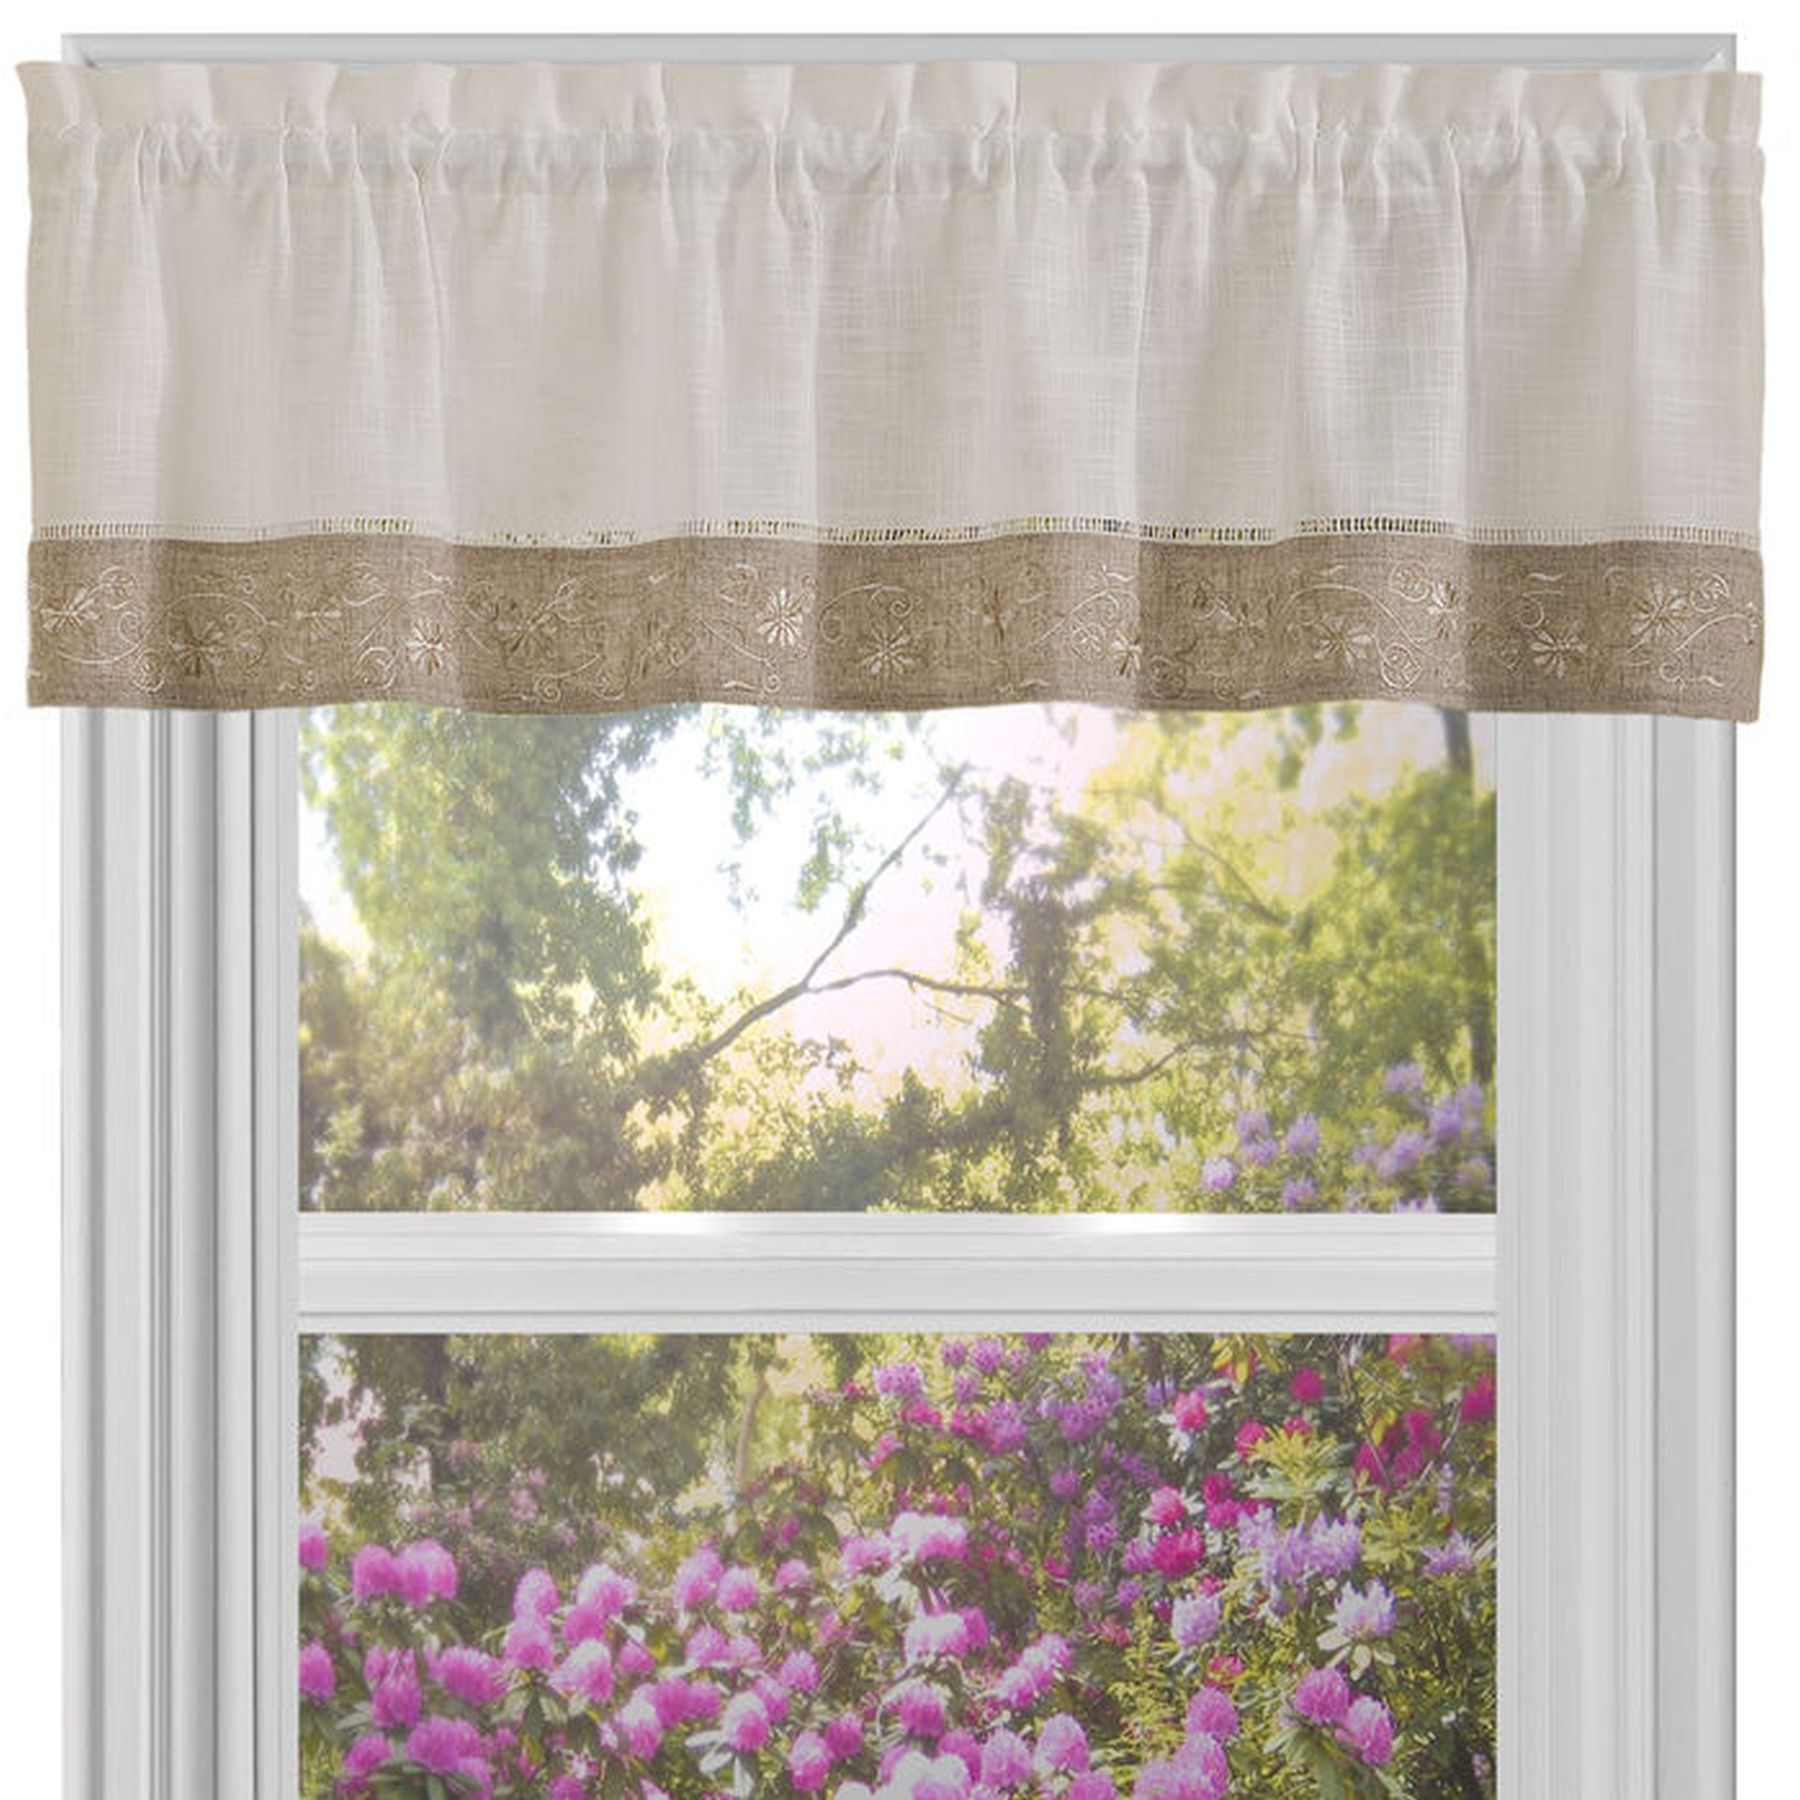 Favorite Traditional Elegance Oakwood 58x14 Window Curtain Valance – Natural For Oakwood Linen Style Decorative Curtain Tier Sets (View 17 of 20)